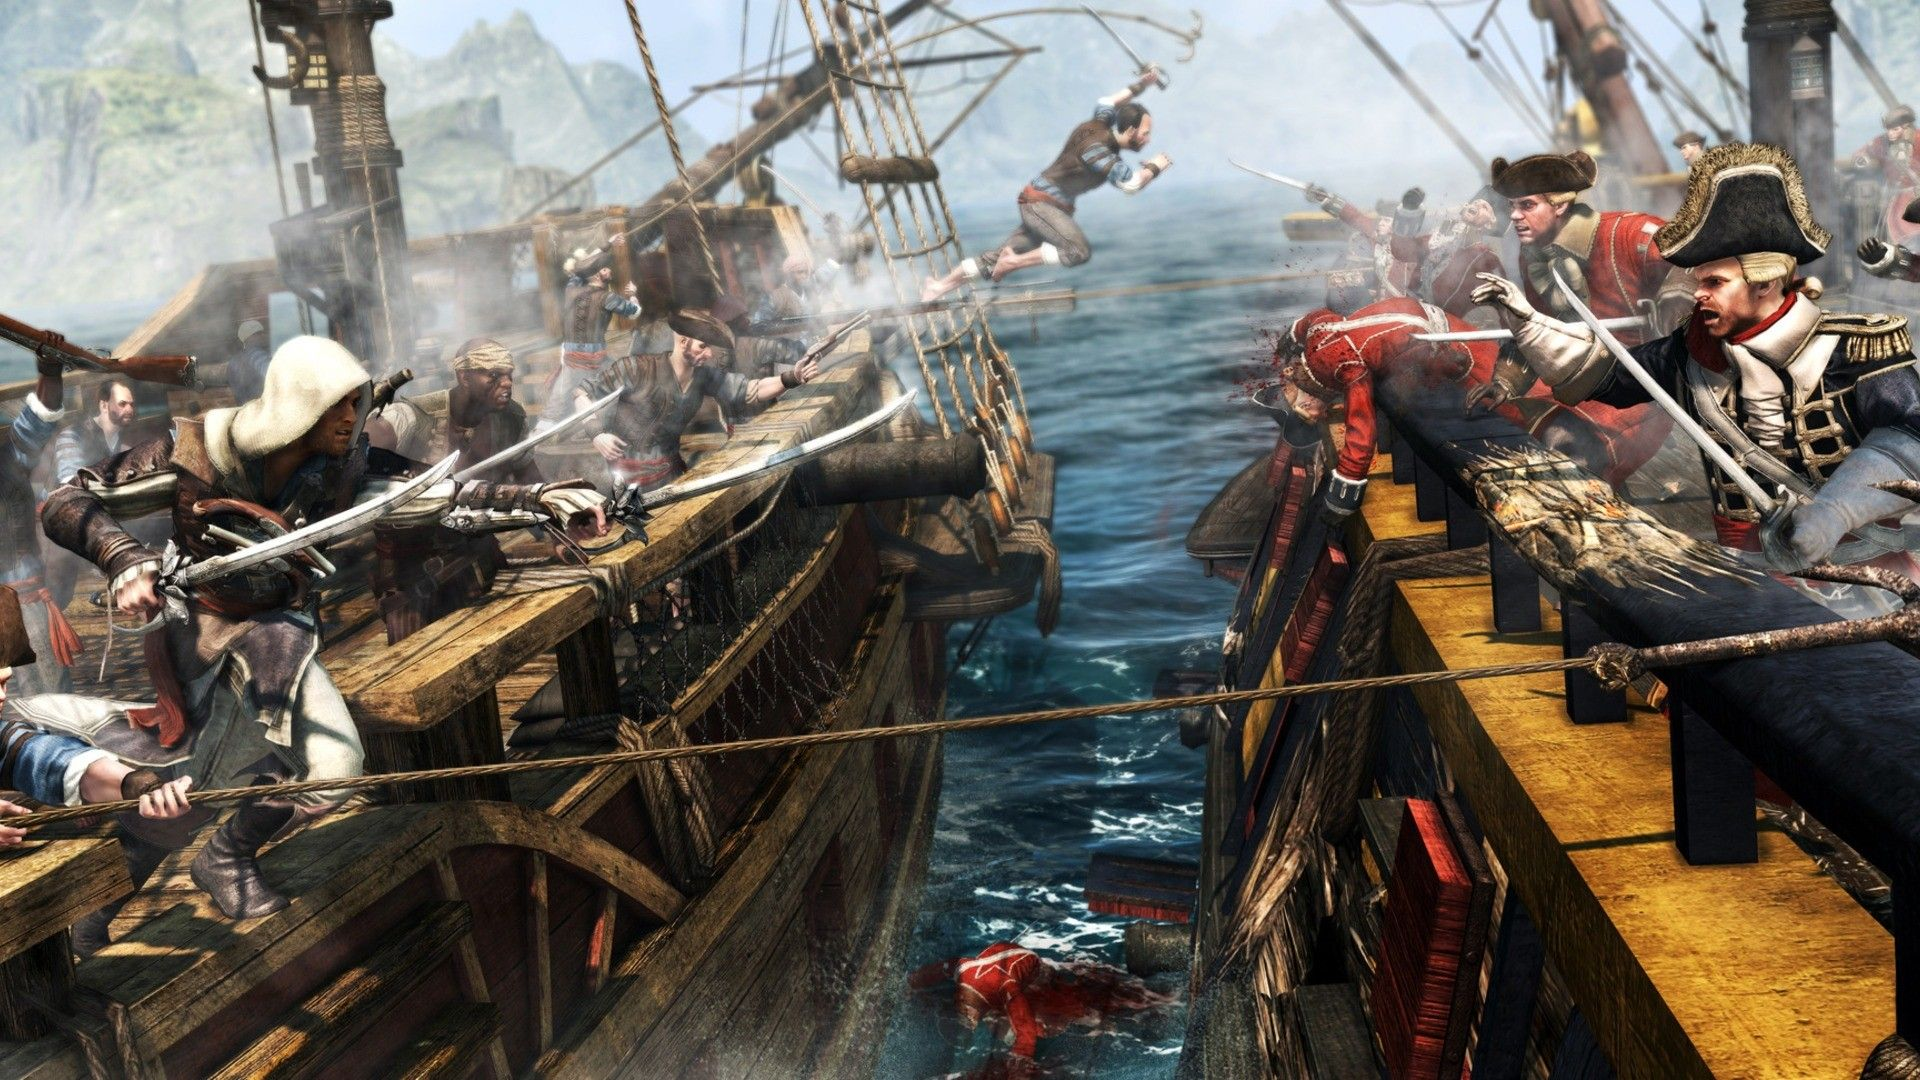 Assassin S Creed 4 Black Flag Ship Combat Wallpapers Top Free